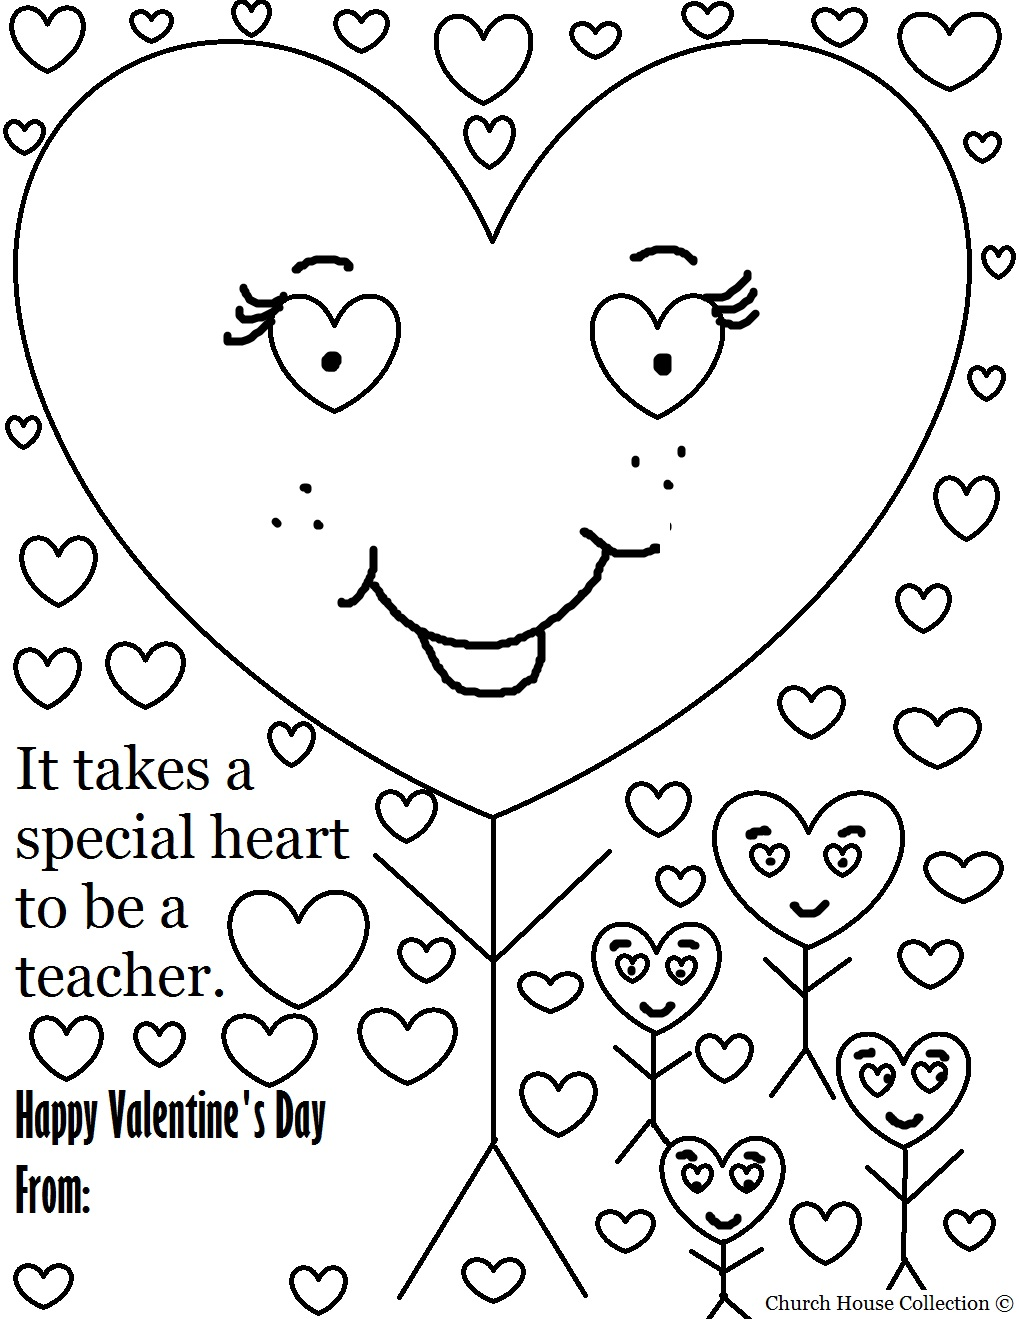 Church House Collection Blog: Valentine's Day Coloring